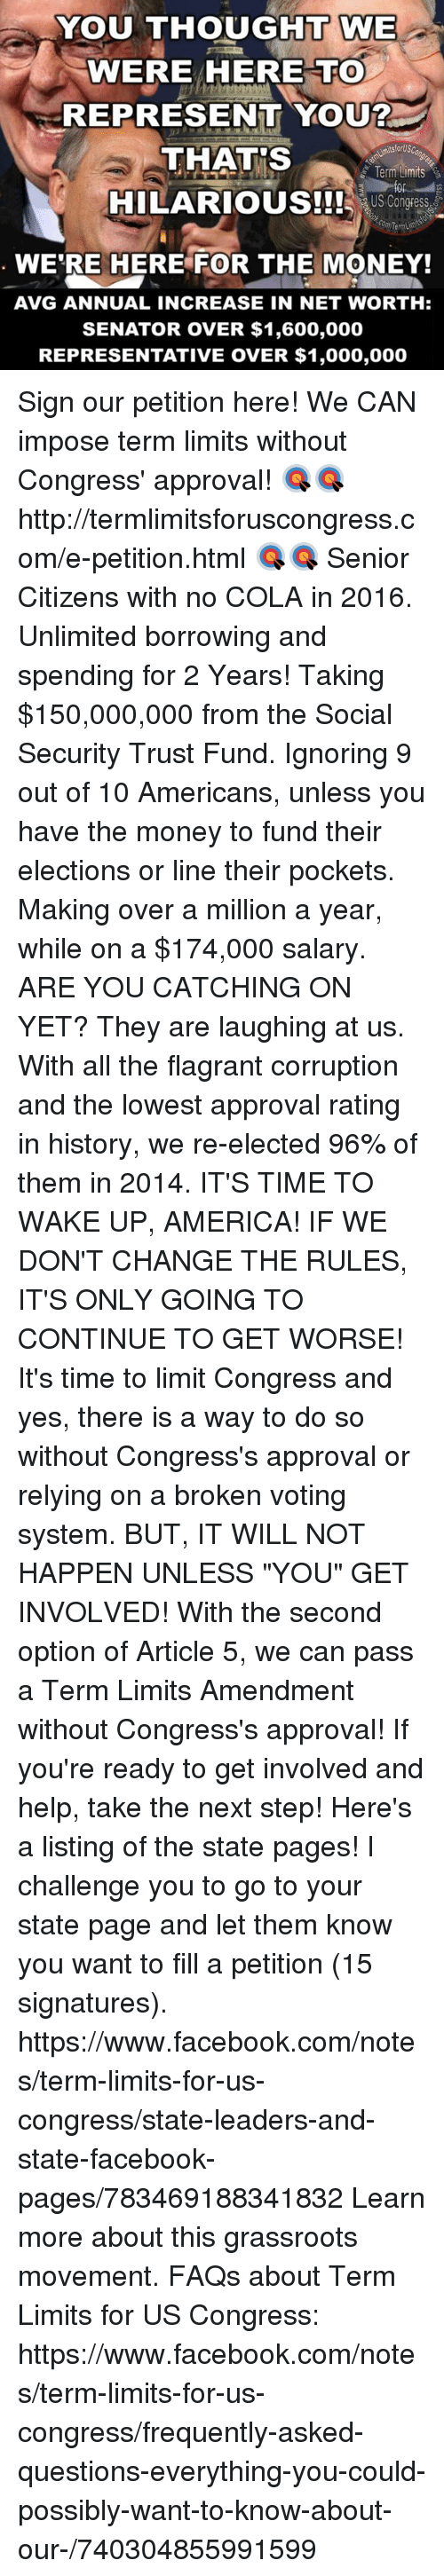 """Approvation: YOU THOUGHT WE  WE  WERE HERE TO  REPRESENT YOU?  ktsforUSC  THATS  Term Limits  HILARIOUS!!! US Congress  WERE HERE FOR THE MONEY!  AVG ANNUAL INCREASE IN NET WORTH:  SENATOR OVER $1,600,000  REPRESENTATIVE OVER $1,000,000 Sign our petition here! We CAN impose term limits without Congress' approval! 🎯🎯http://termlimitsforuscongress.com/e-petition.html 🎯🎯  Senior Citizens with no COLA in 2016.  Unlimited borrowing and spending for 2 Years!  Taking $150,000,000 from the Social Security Trust Fund.  Ignoring 9 out of 10 Americans, unless you have the money to fund their elections or line their pockets.  Making over a million a year, while on a $174,000 salary.  ARE YOU CATCHING ON YET?  They are laughing at us.  With all the flagrant corruption and the lowest approval rating in history, we re-elected 96% of them in 2014.  IT'S TIME TO WAKE UP, AMERICA!  IF WE DON'T CHANGE THE RULES, IT'S ONLY GOING TO CONTINUE TO GET WORSE!  It's time to limit Congress and yes, there is a way to do so without Congress's approval or relying on a broken voting system. BUT, IT WILL NOT HAPPEN UNLESS """"YOU"""" GET INVOLVED!  With the second option of Article 5, we can pass a Term Limits Amendment without Congress's approval!  If you're ready to get involved and help, take the next step! Here's a listing of the state pages! I challenge you to go to your state page and let them know you want to fill a petition (15 signatures). https://www.facebook.com/notes/term-limits-for-us-congress/state-leaders-and-state-facebook-pages/783469188341832  Learn more about this grassroots movement. FAQs about Term Limits for US Congress: https://www.facebook.com/notes/term-limits-for-us-congress/frequently-asked-questions-everything-you-could-possibly-want-to-know-about-our-/740304855991599"""